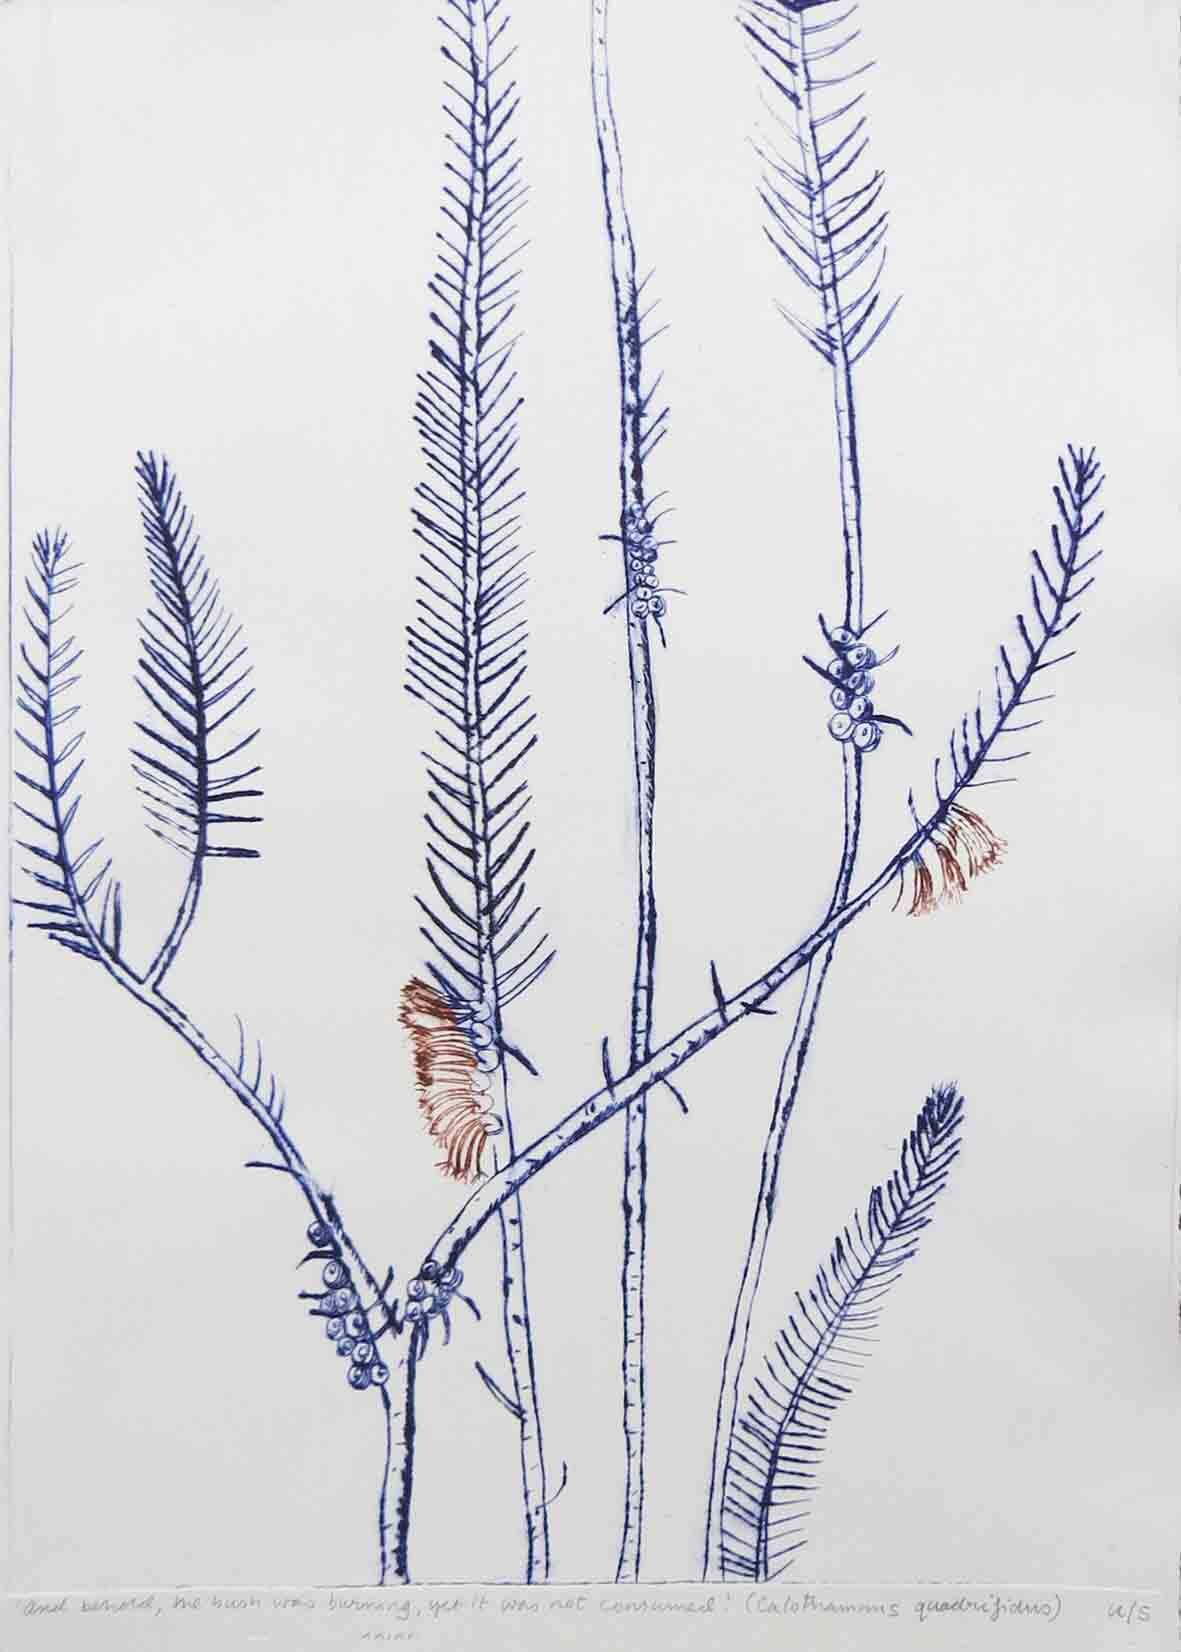 32. Marian Giles, 'And behold, the bush was burning, yet it was not consumed.' (Calothamnus quadrifidus), 2019, drypoint on Arches 88 paper, 42 x 29.7 cm $100